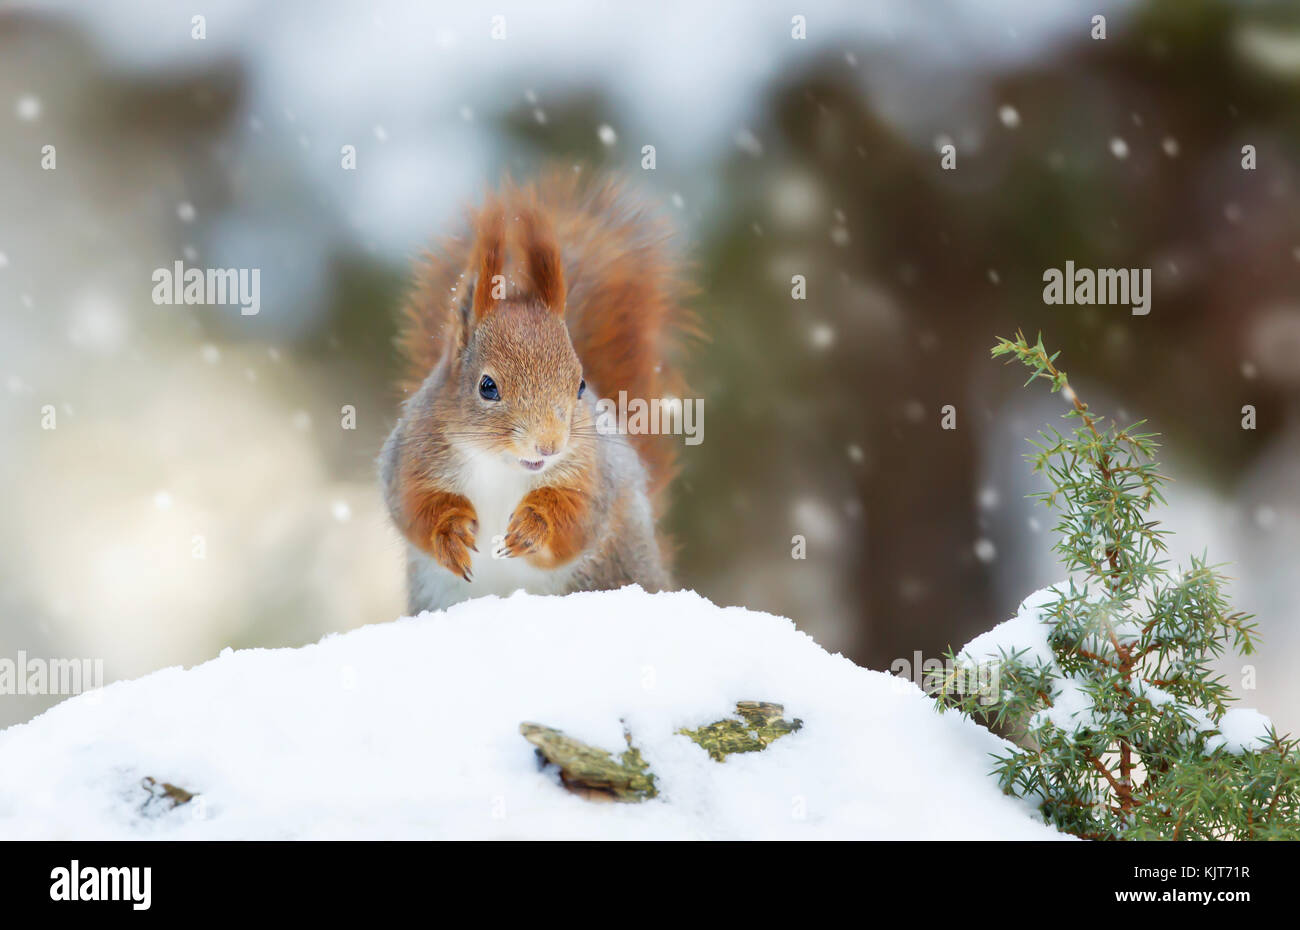 Red squirrel in the falling snow - Stock Image